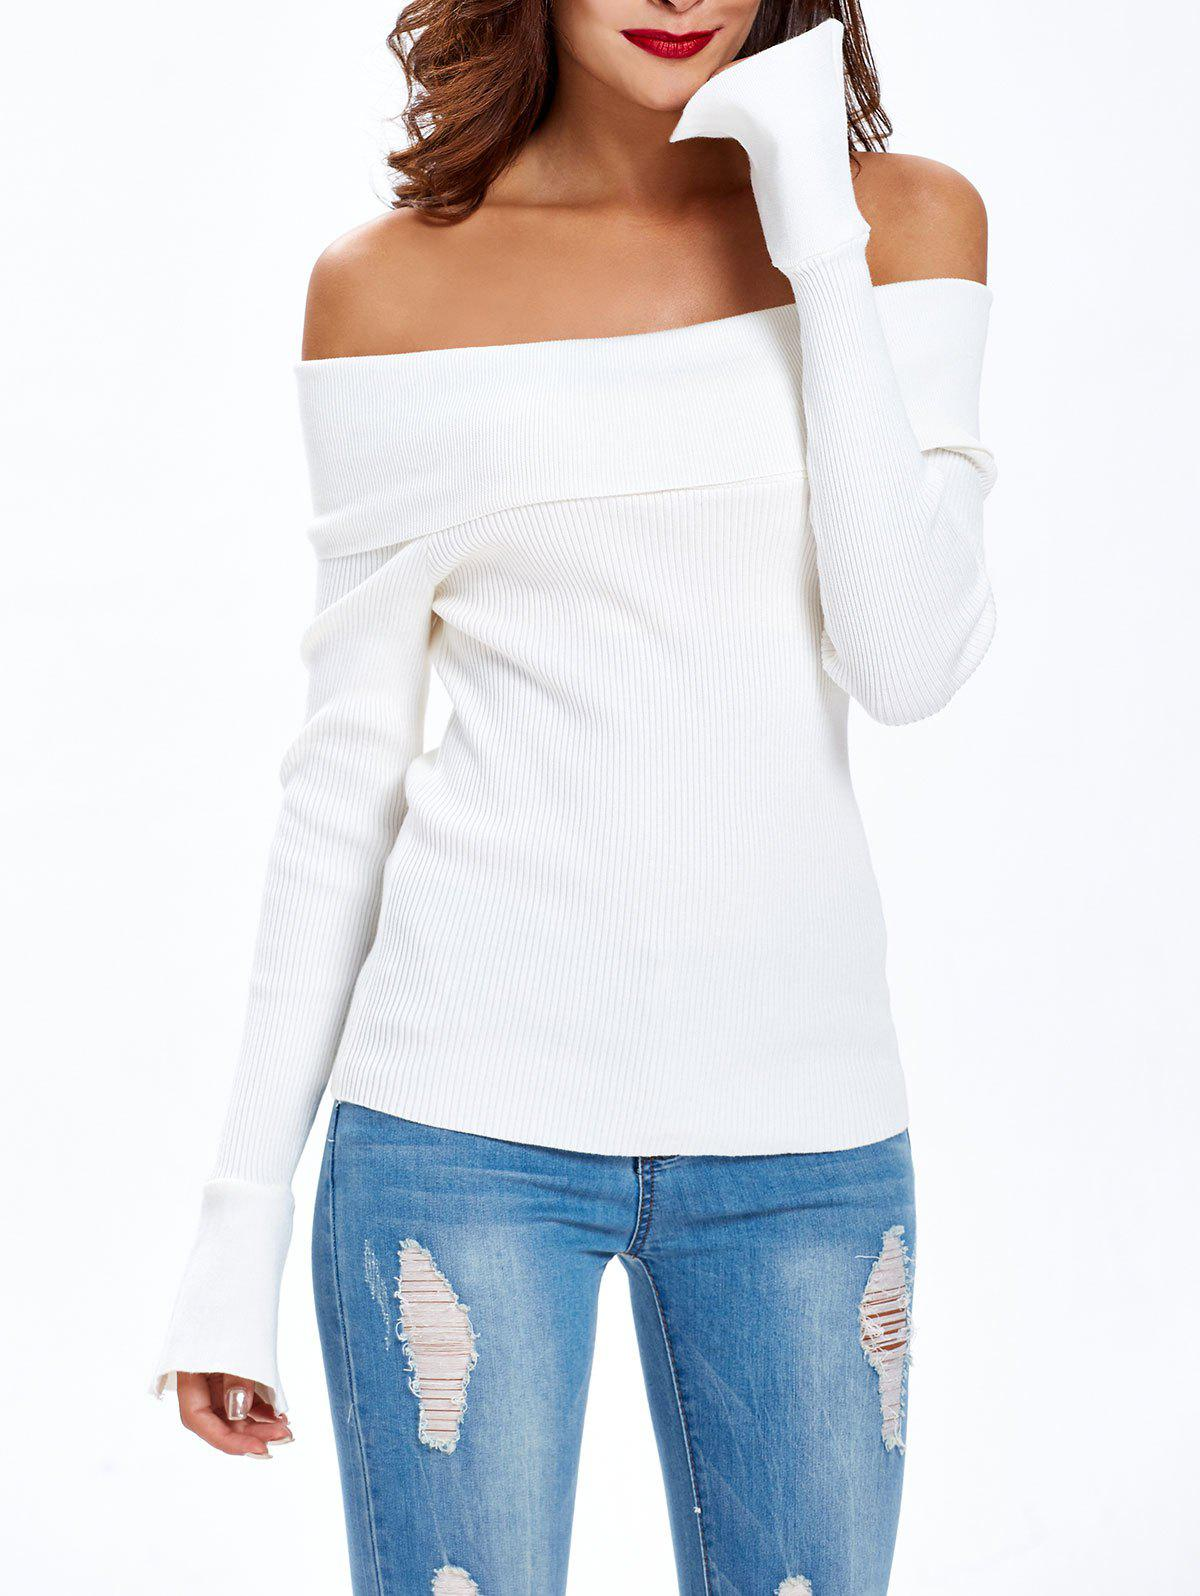 Bell Sleeves Off-The-Shoulder Slimming Knitwear - WHITE ONE SIZE